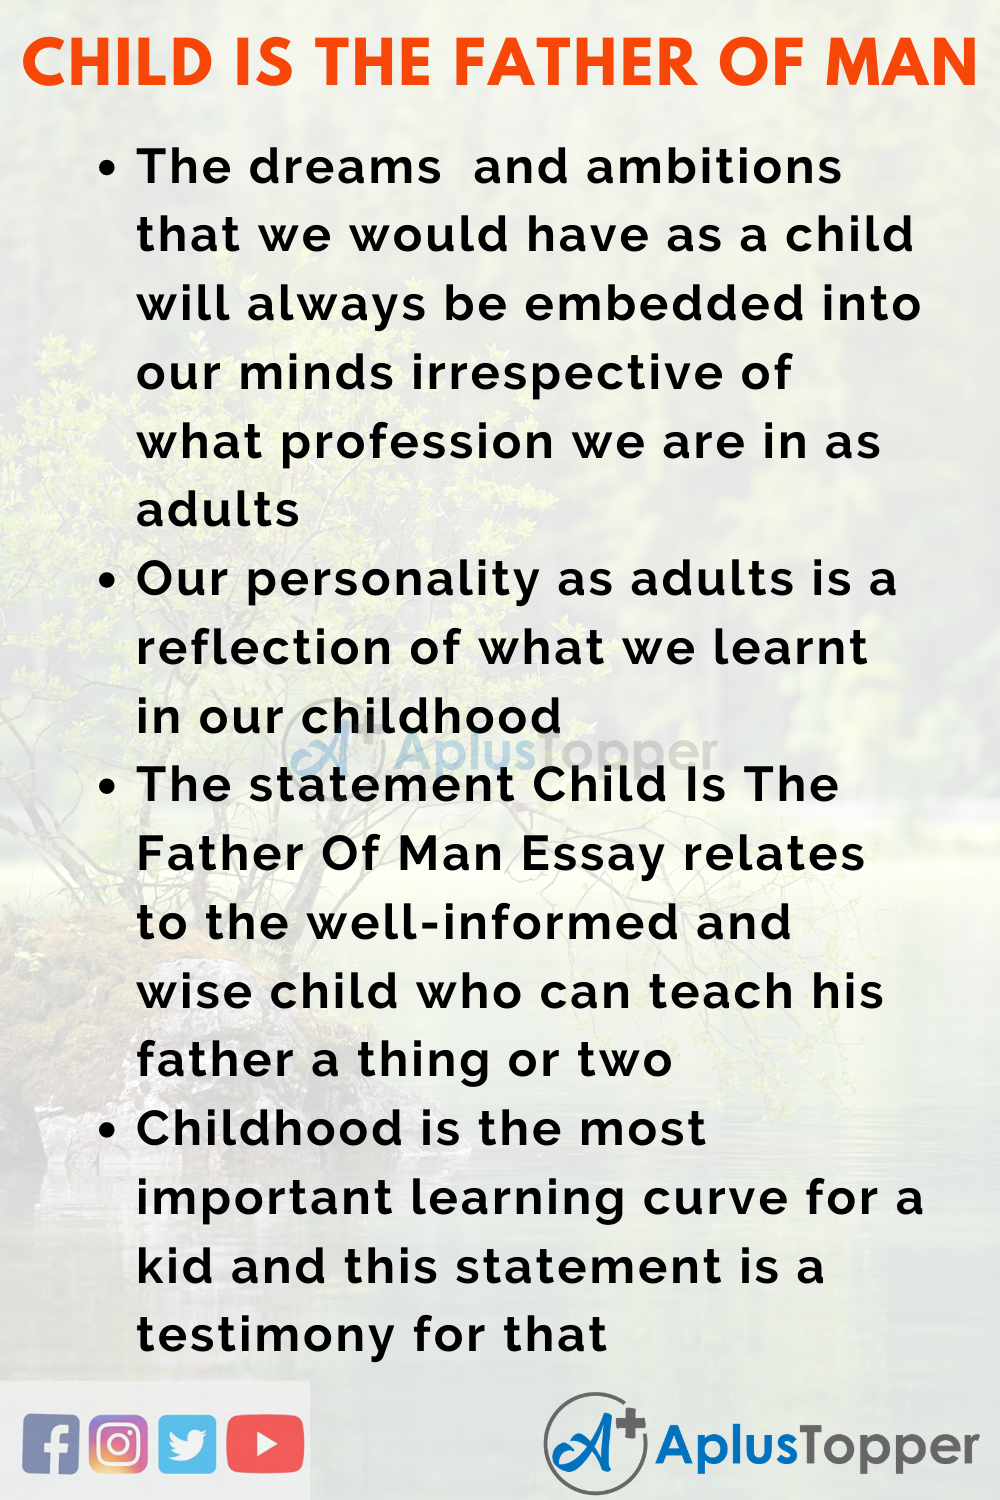 Essay About Child Is The Father Of Man